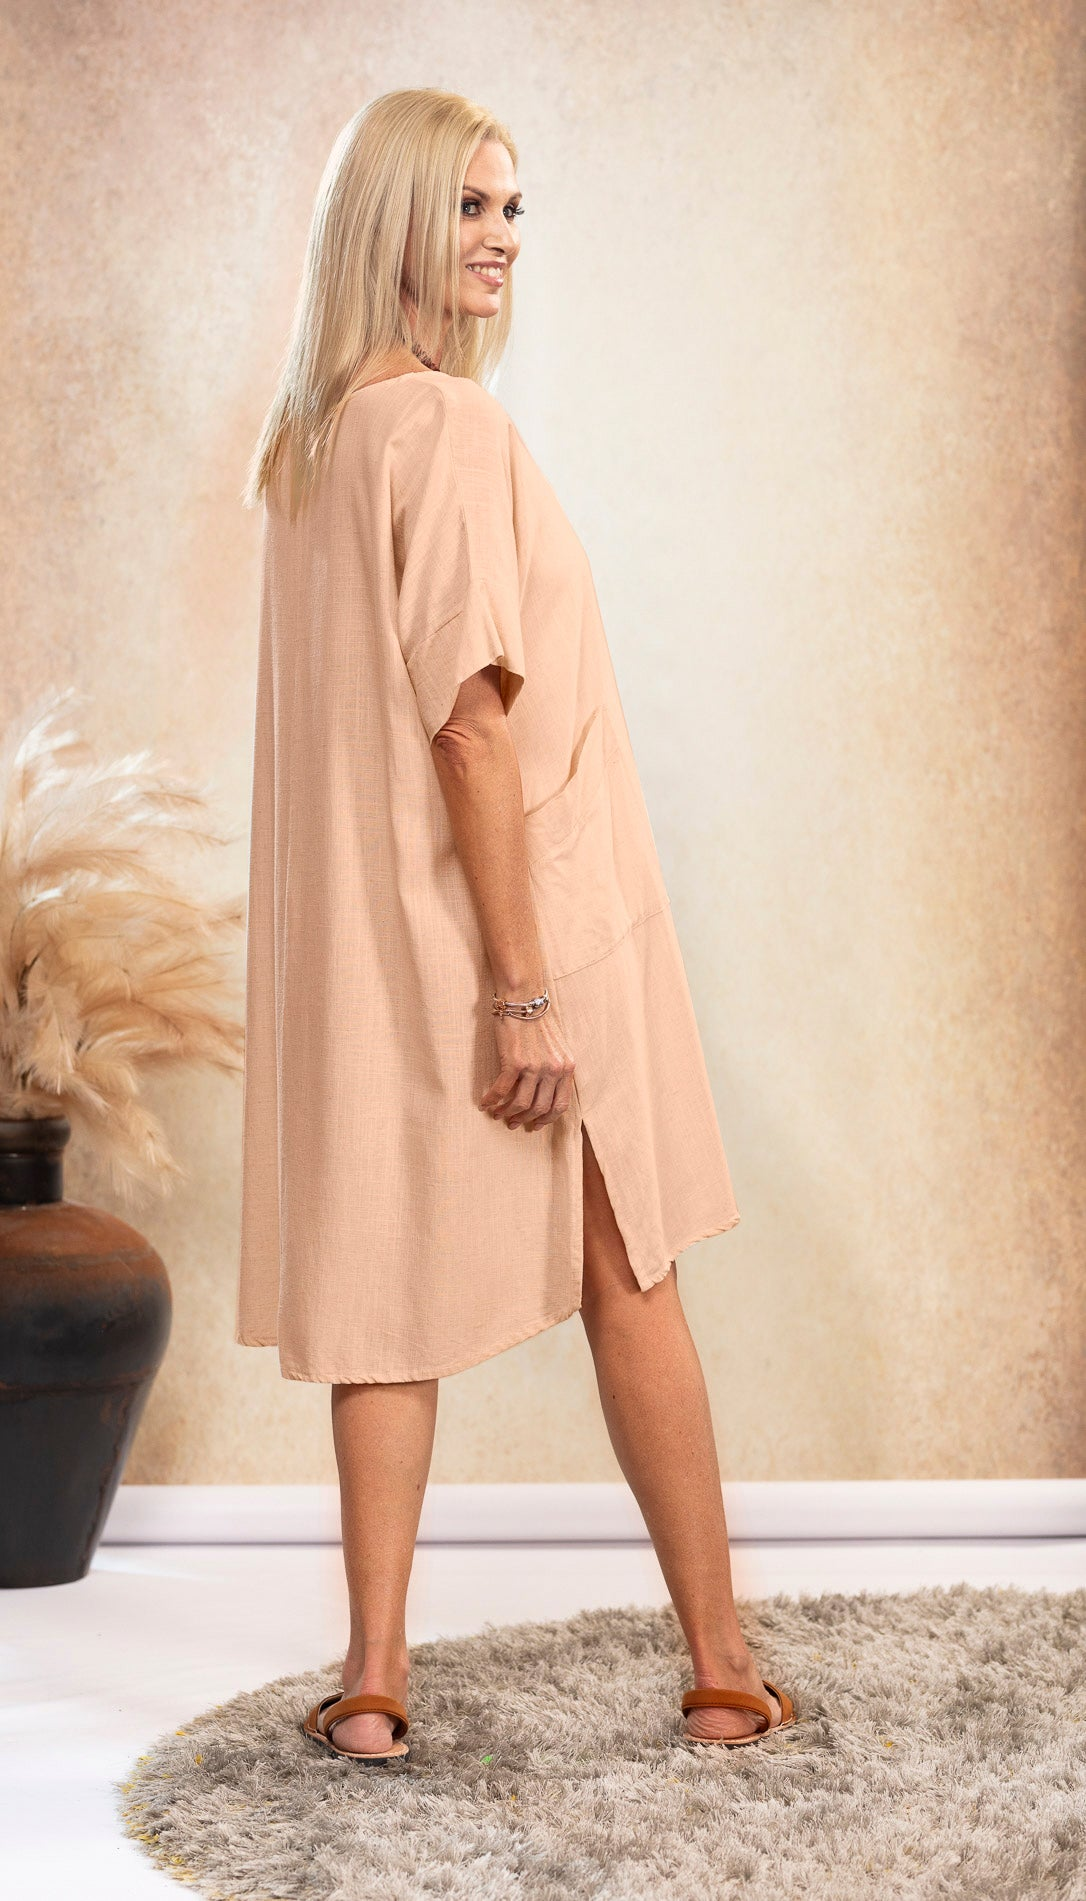 The Shift Linen Dress in Dusk